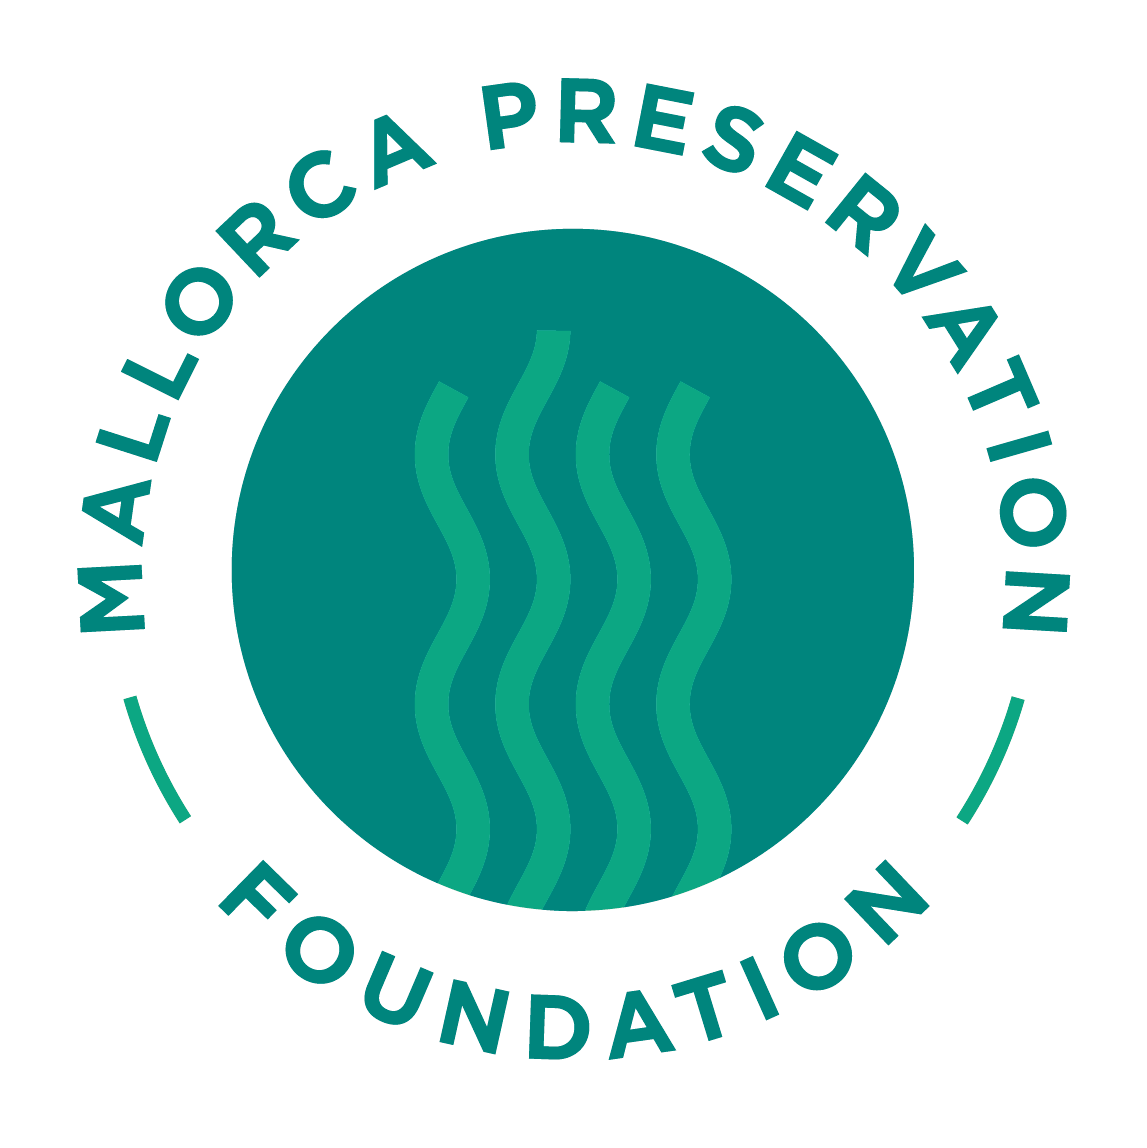 Mallorca preservation fund